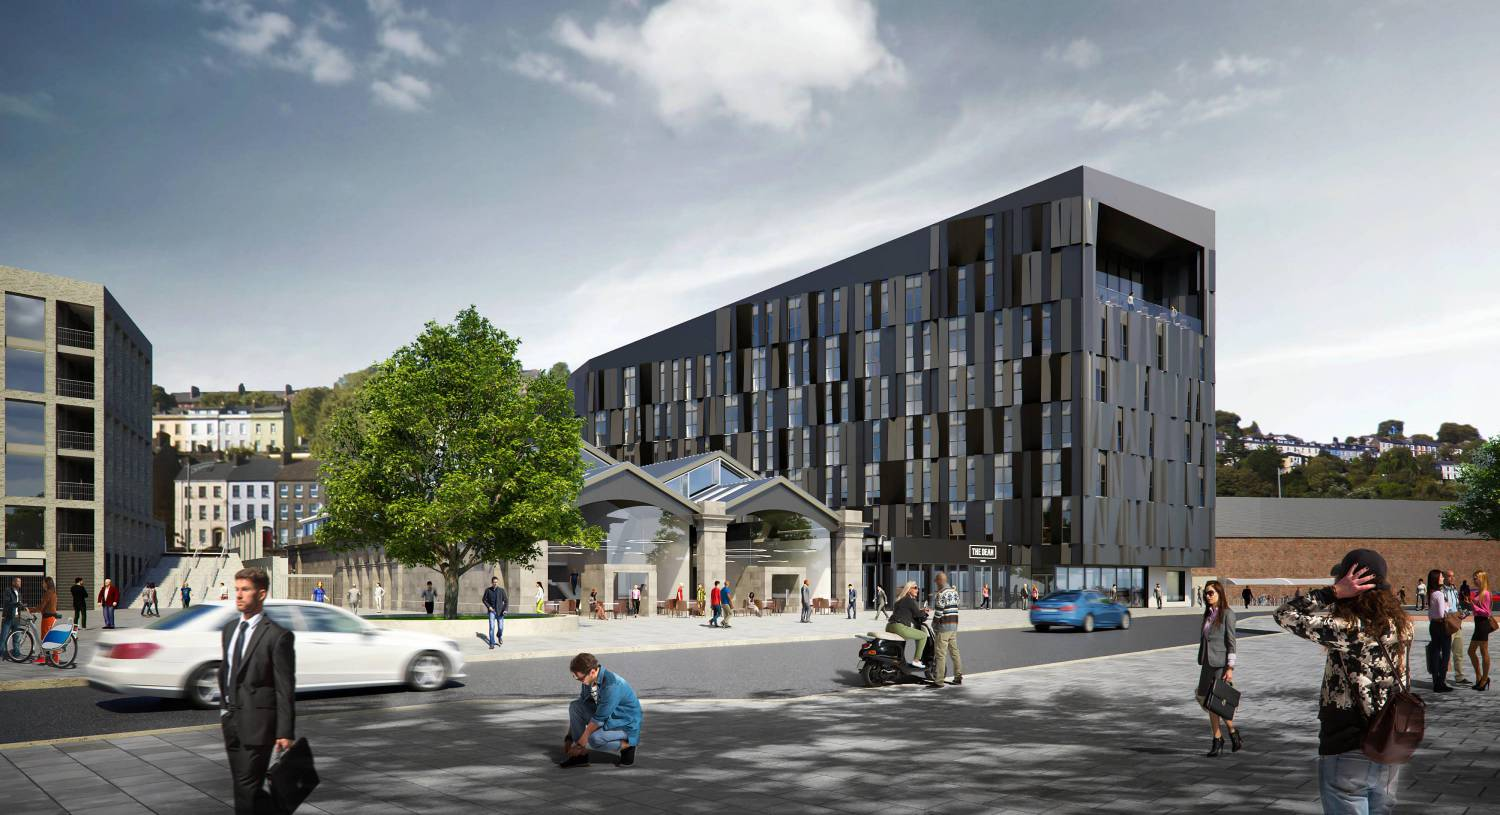 Empty units on Patrick's Street – Crisis or Opportunity?